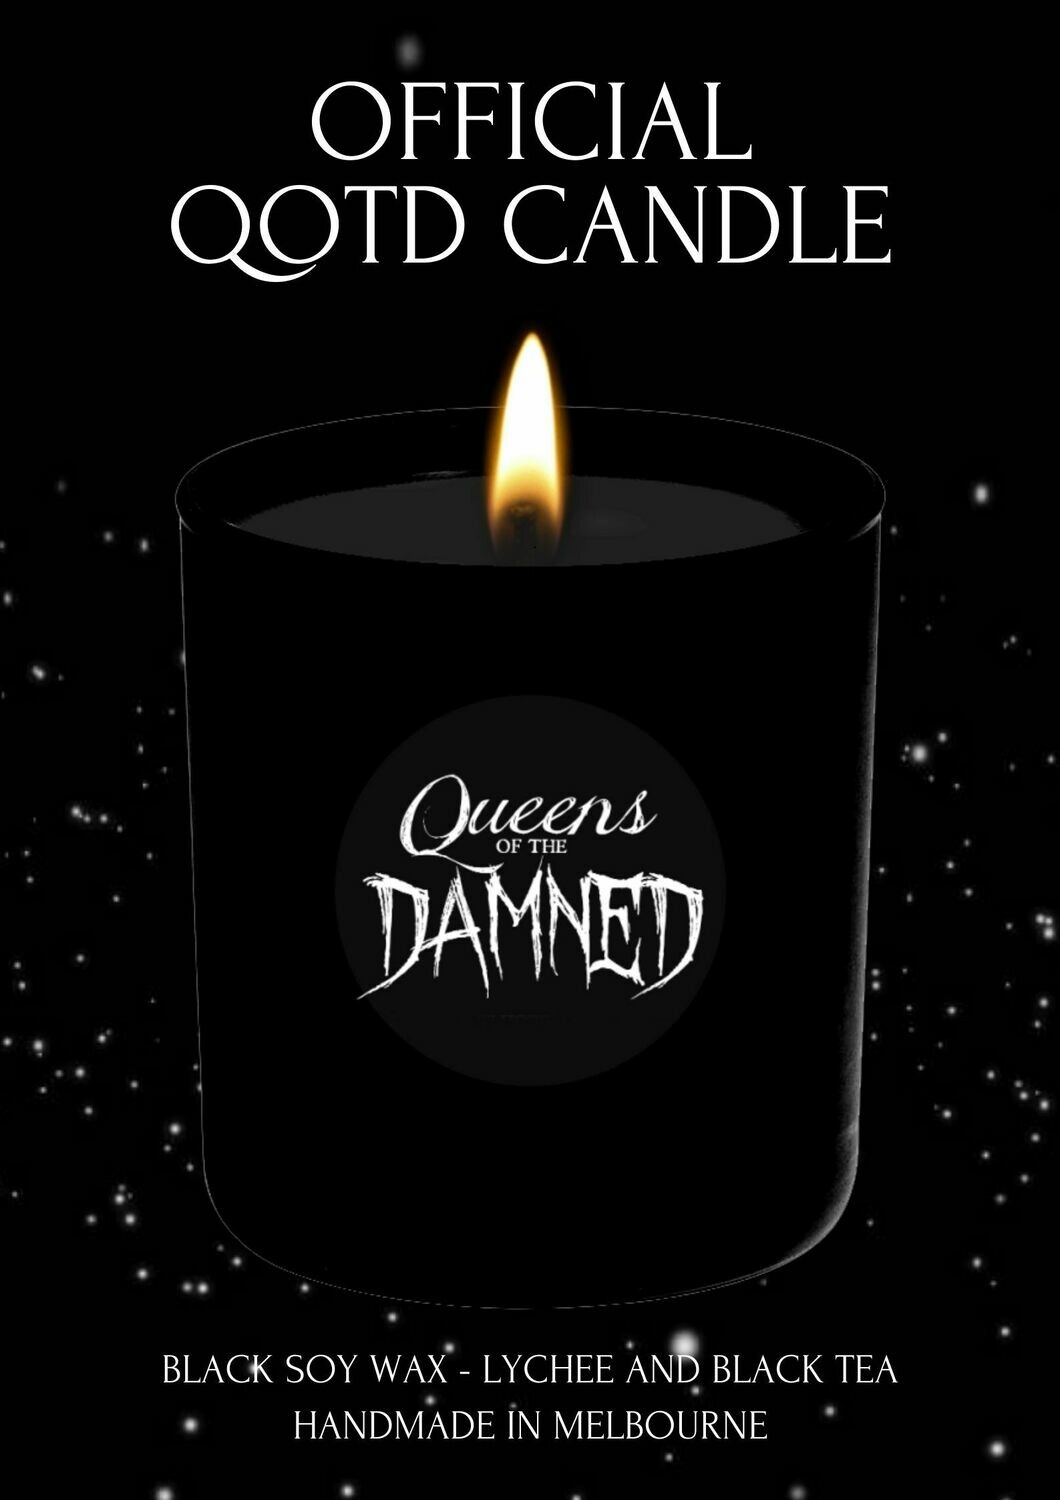 QUEENS OF THE DAMNED OFFICIAL CANDLE